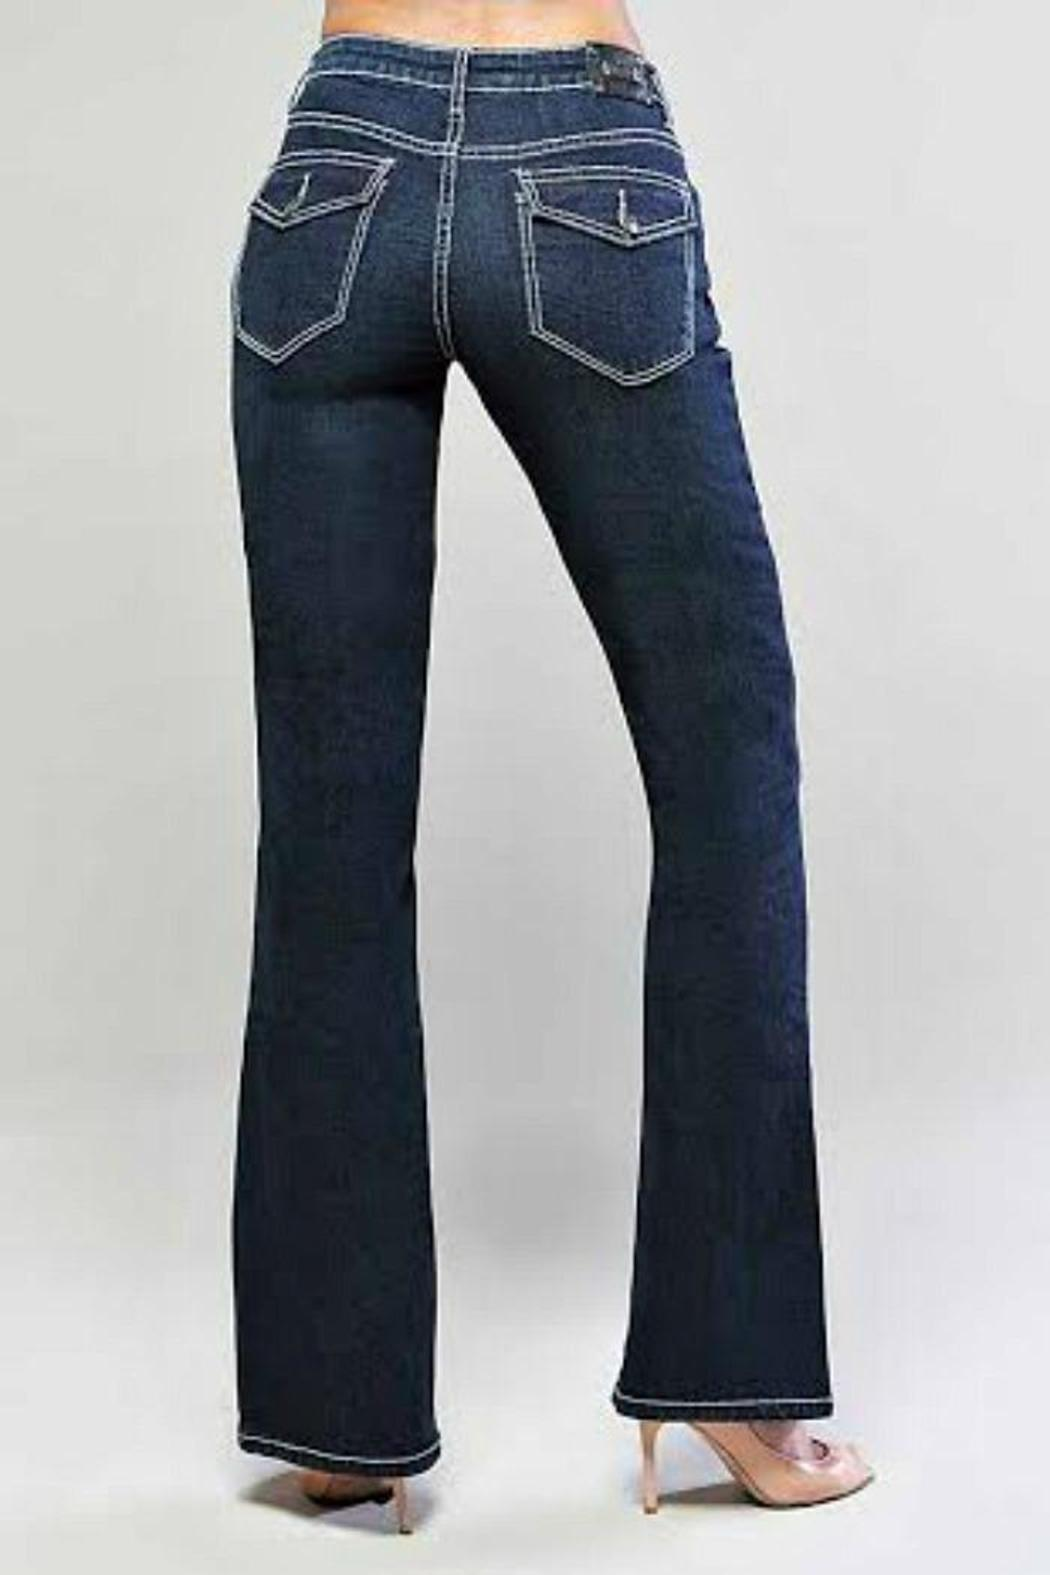 Find great deals on eBay for tru jeans. Shop with confidence.